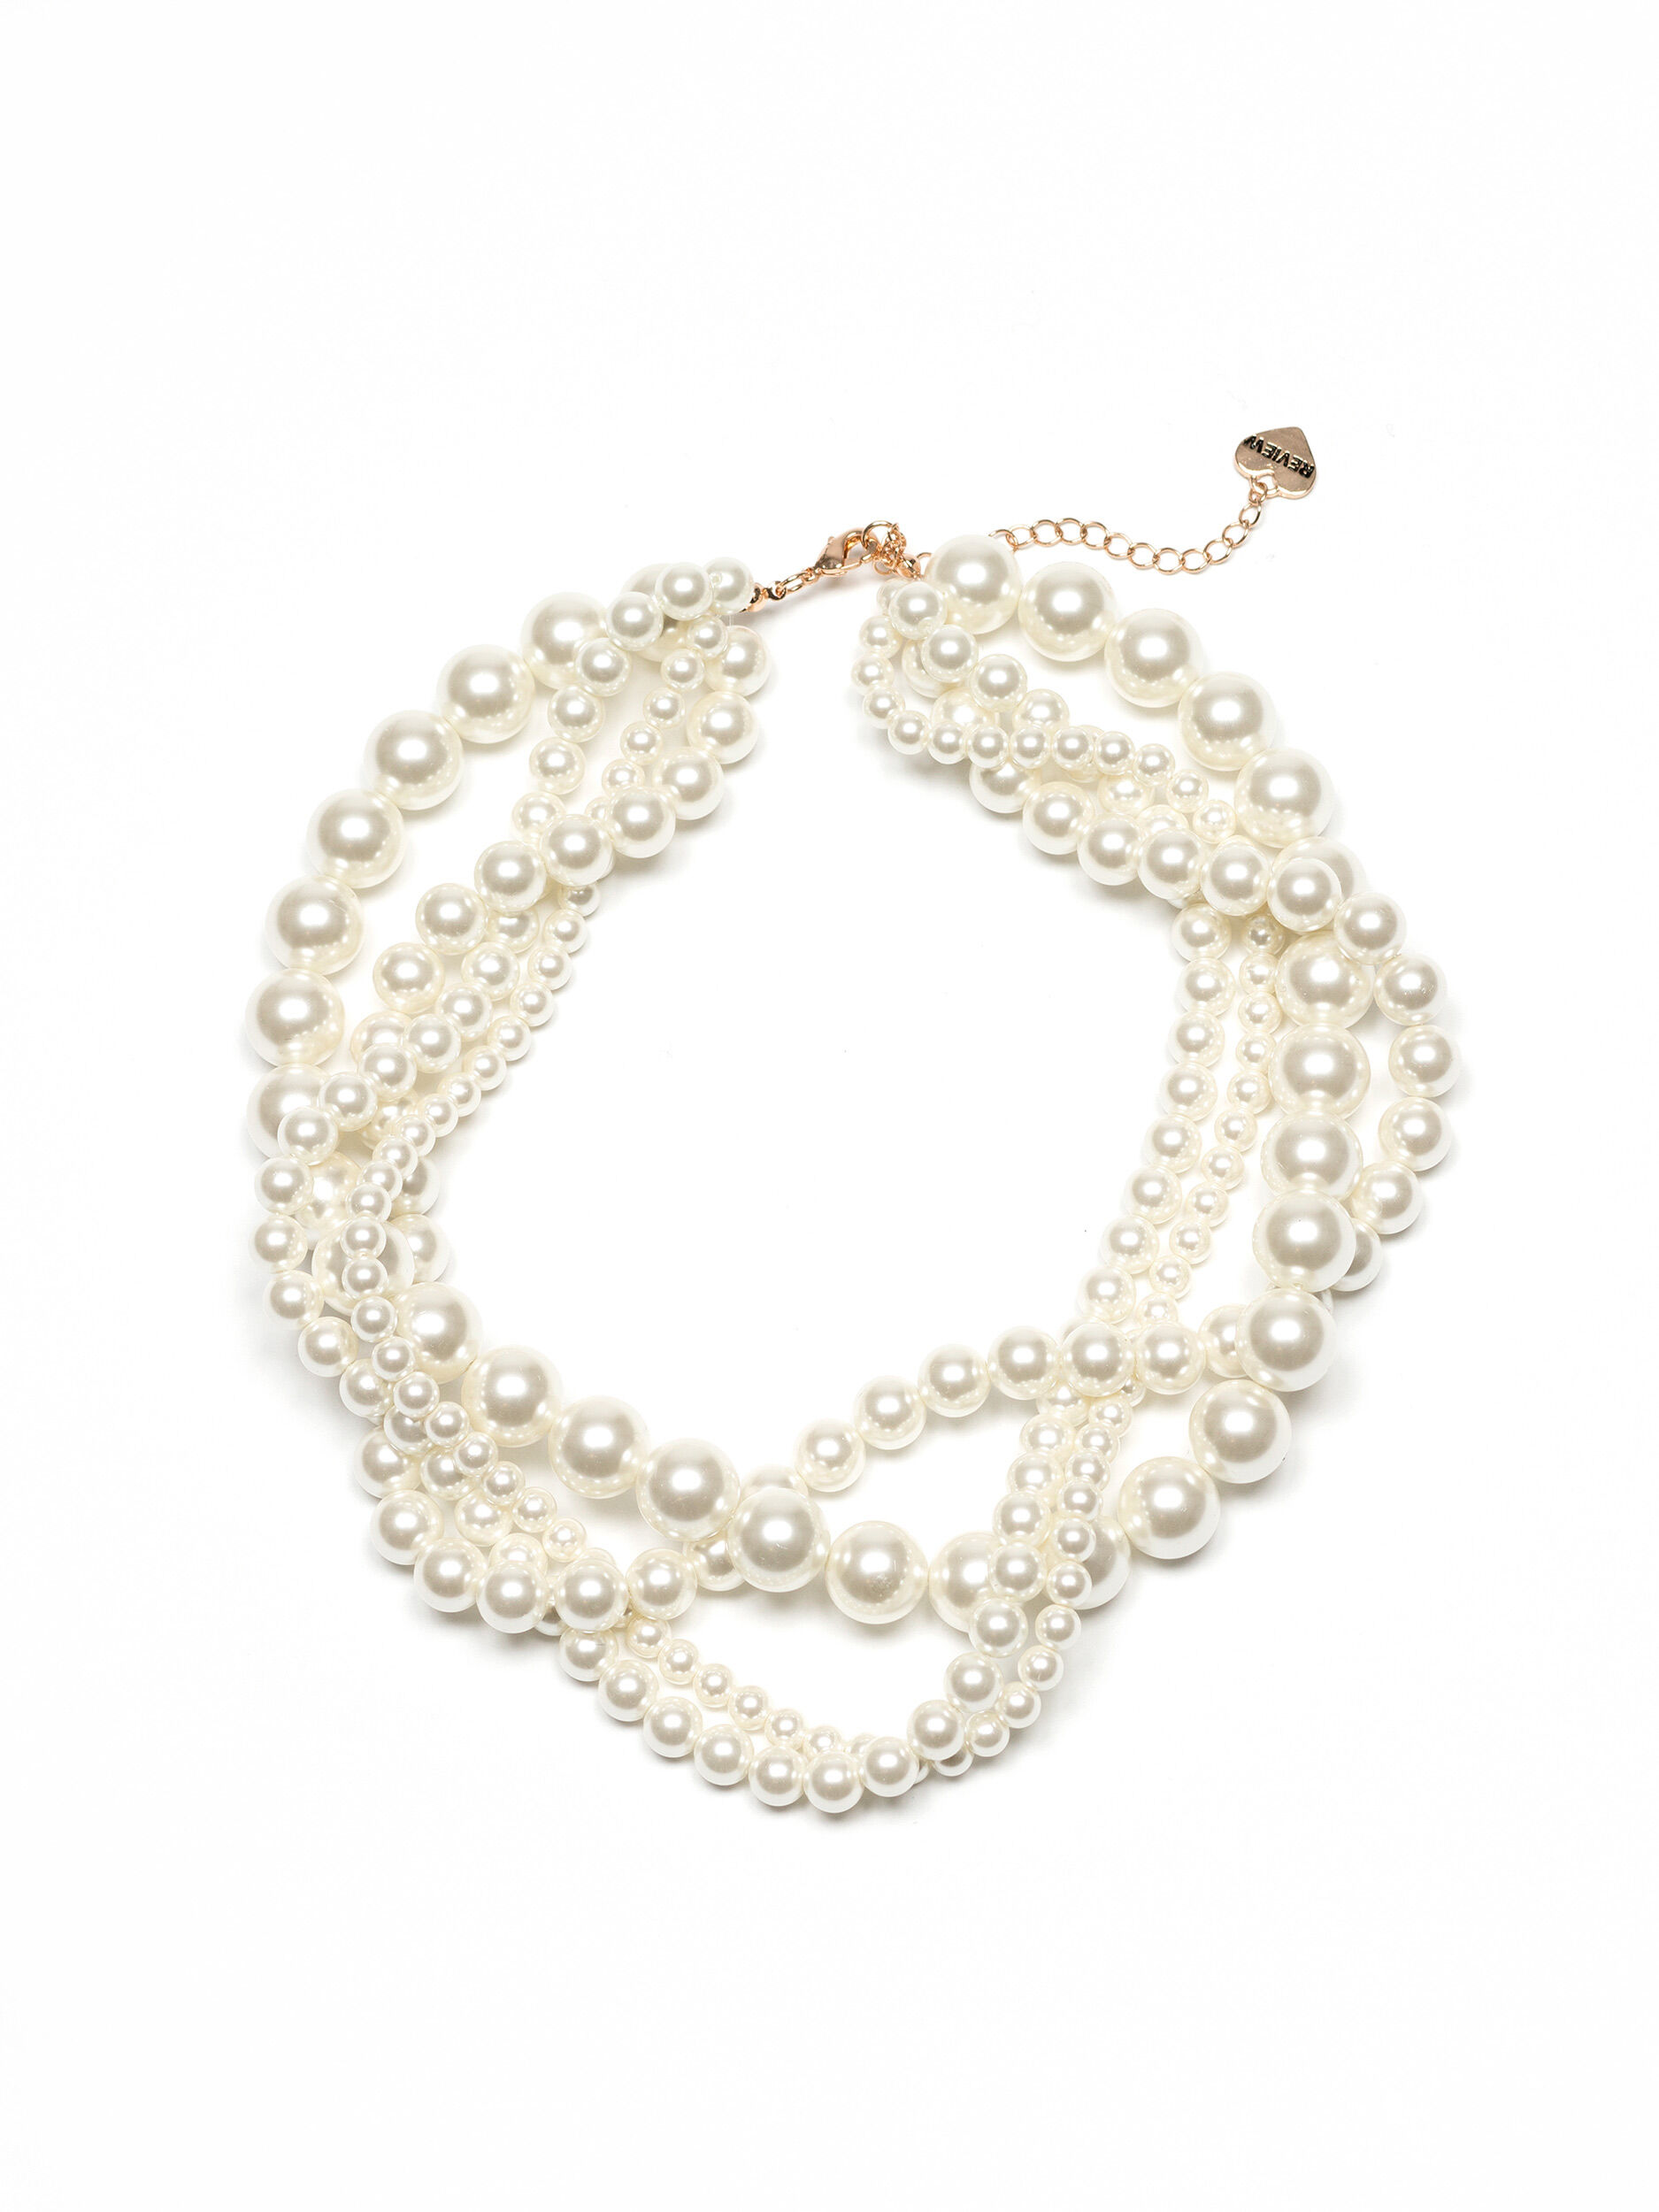 Heart Of Pearls Necklace